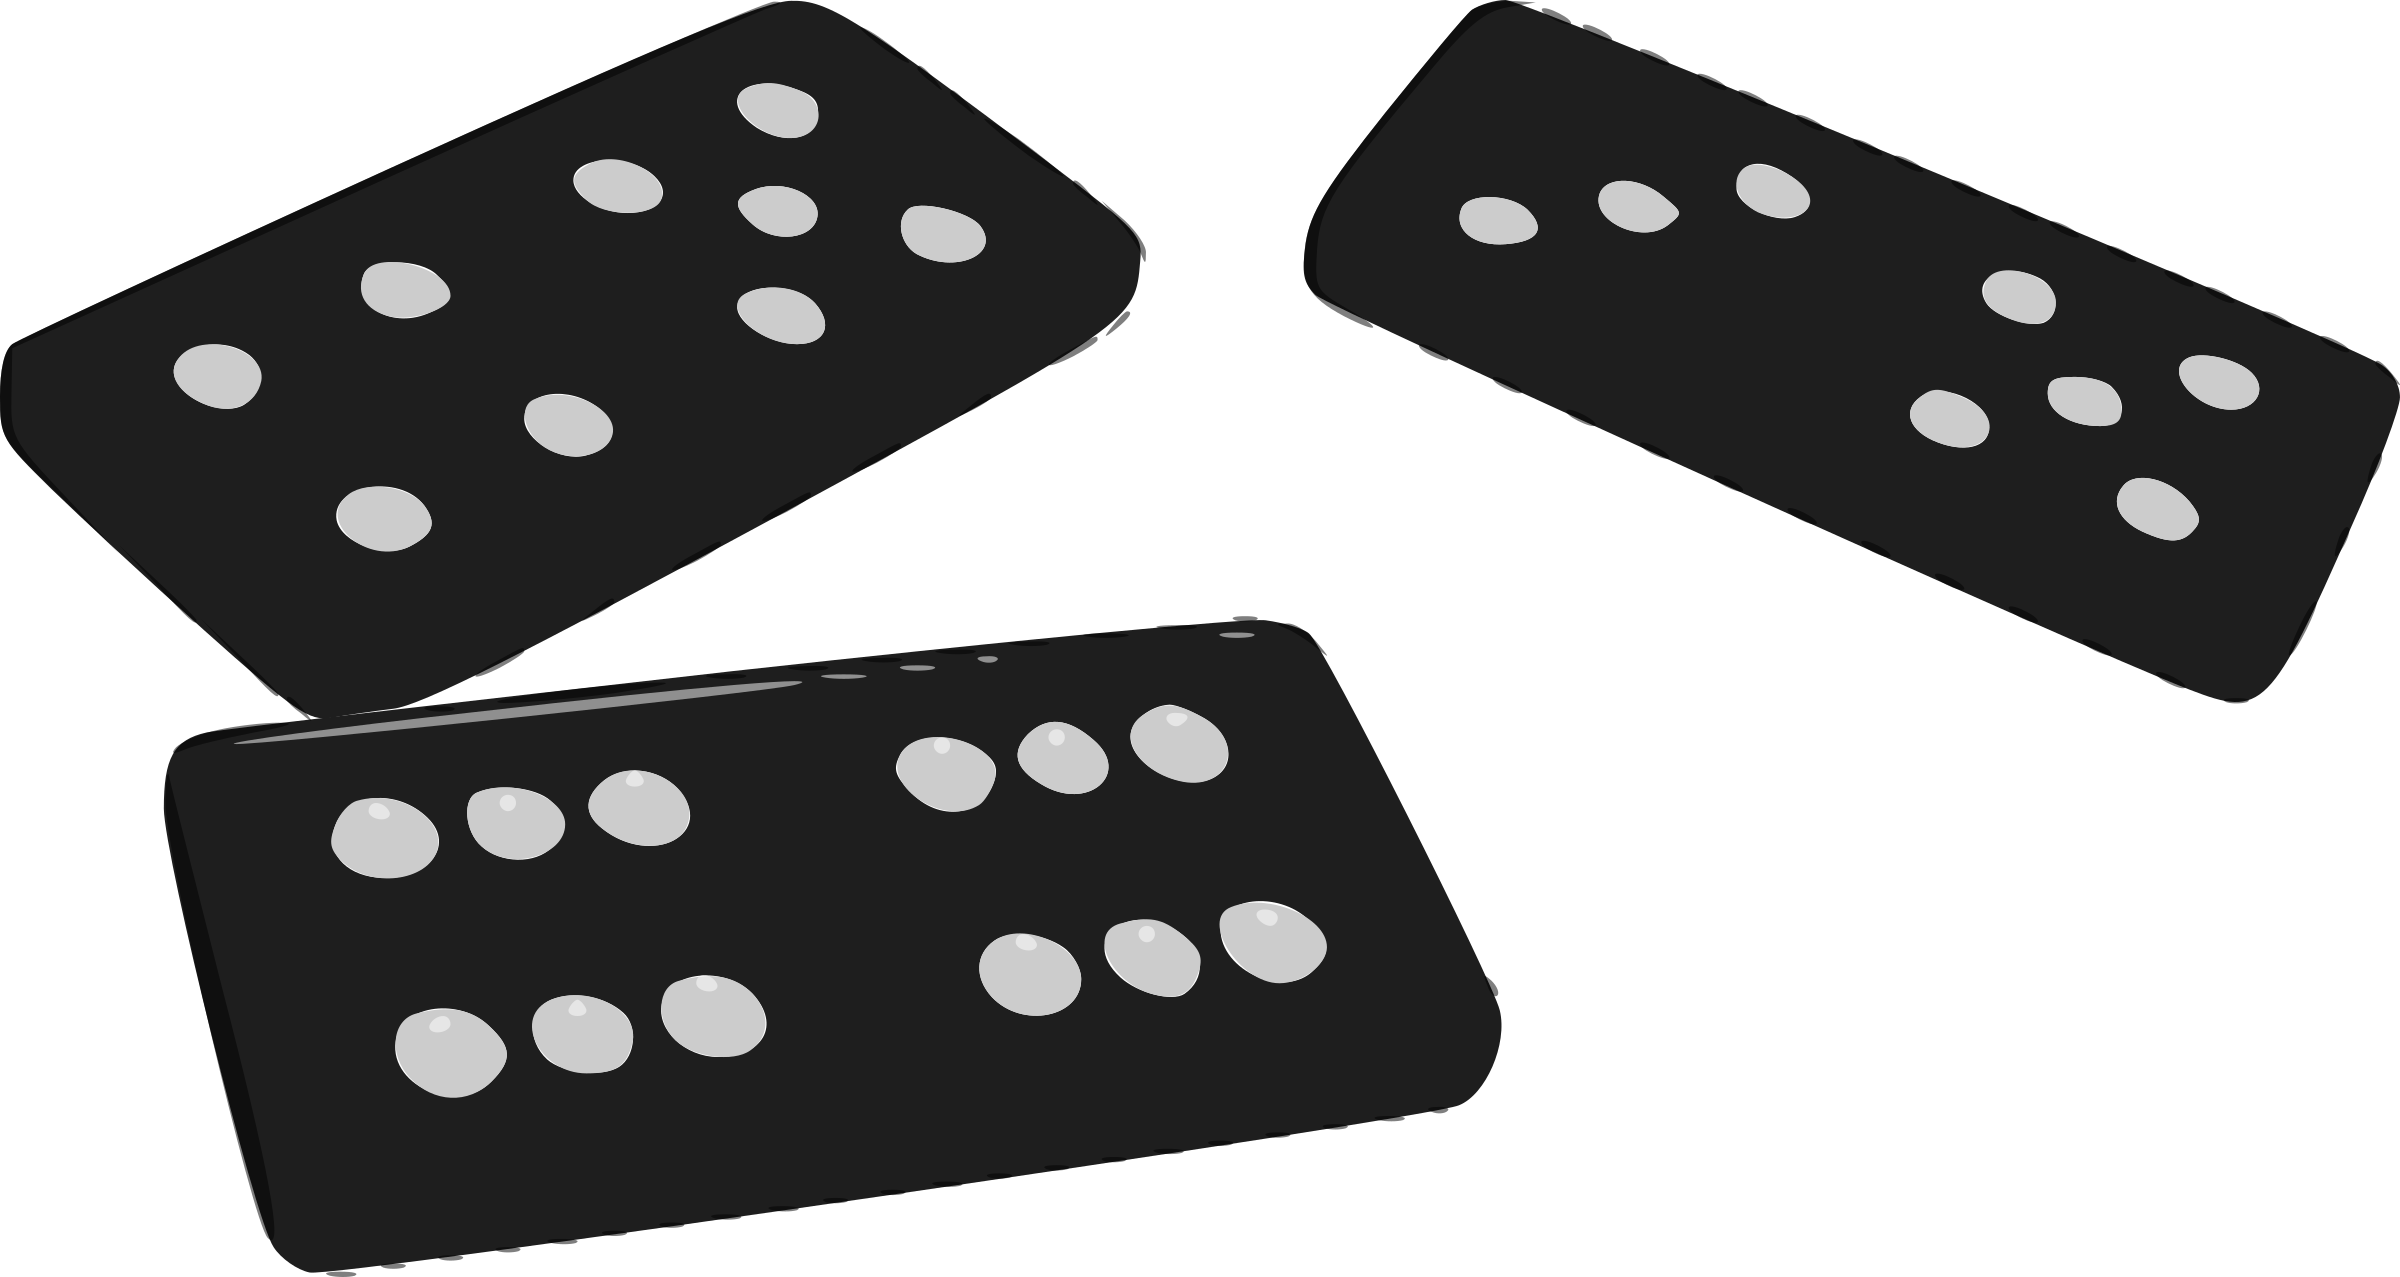 Station . 5 clipart domino